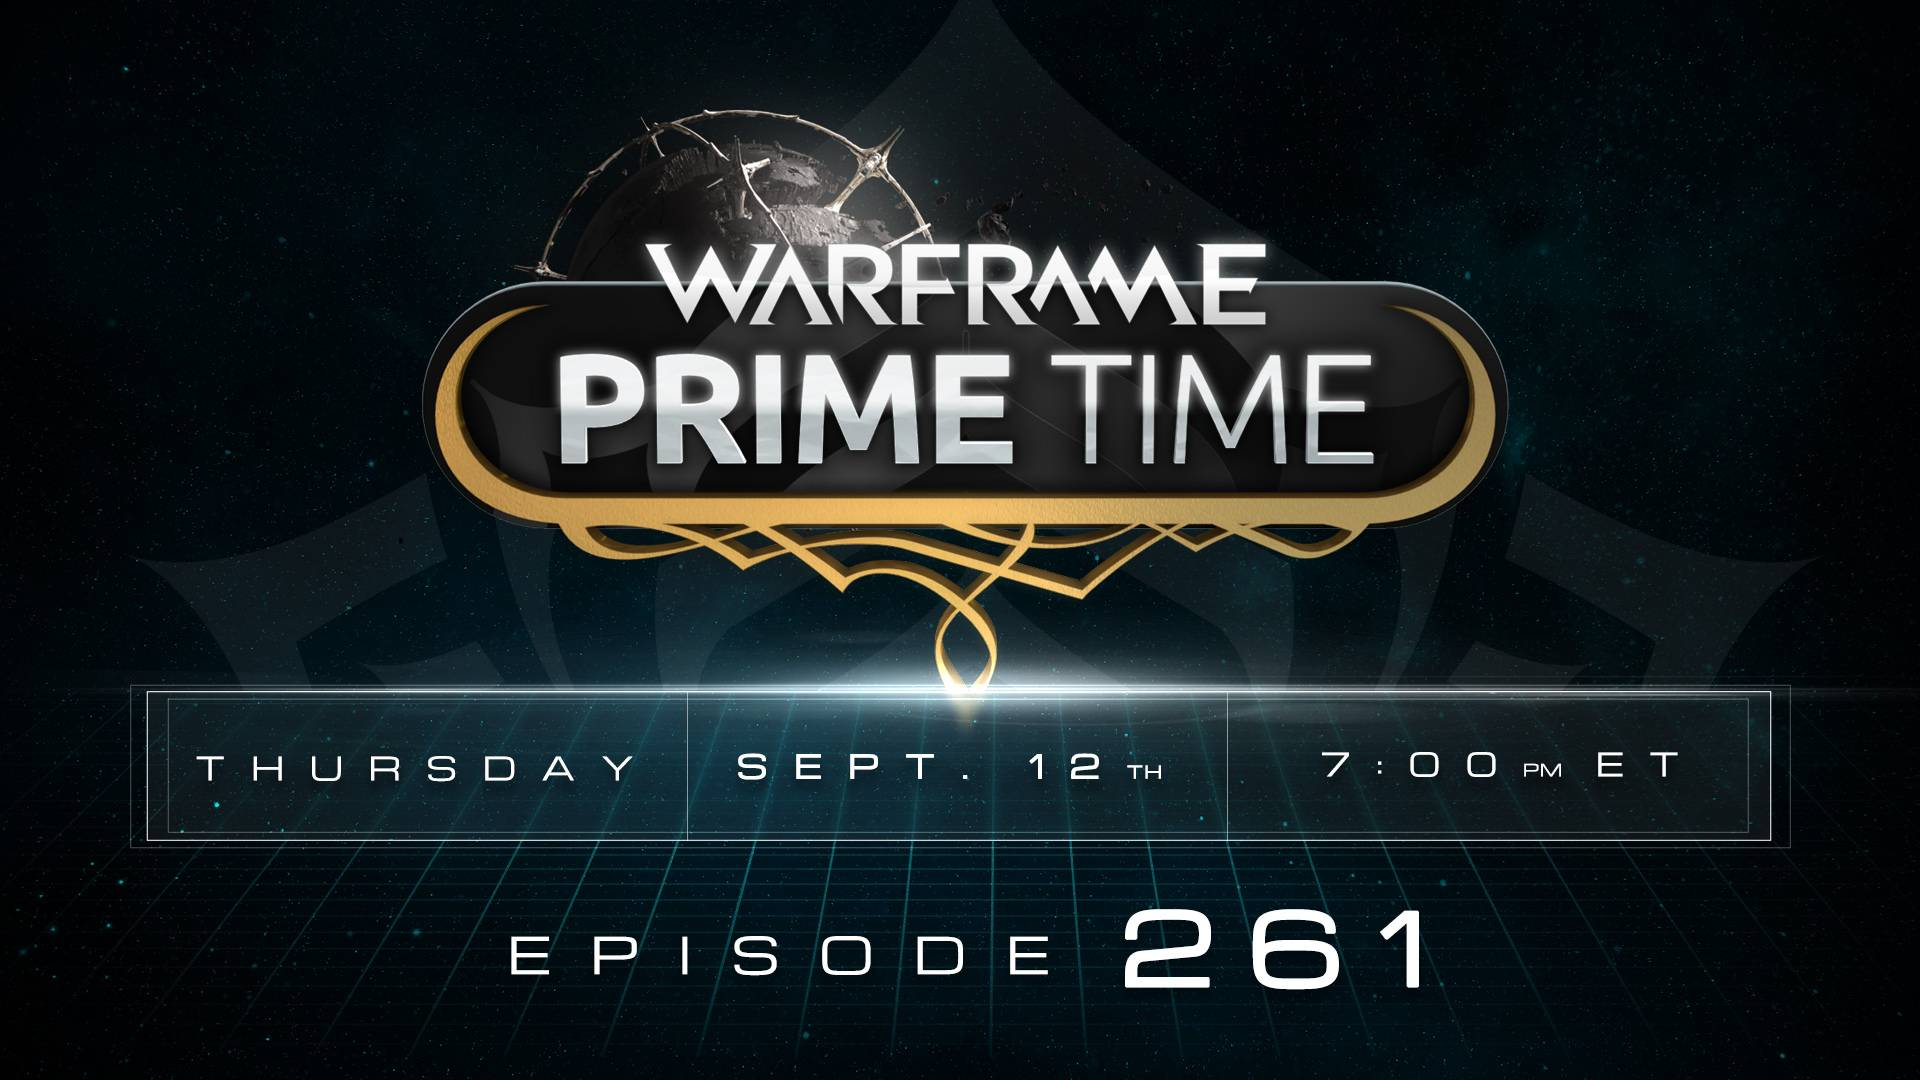 Latest Warframe News - Semlar com